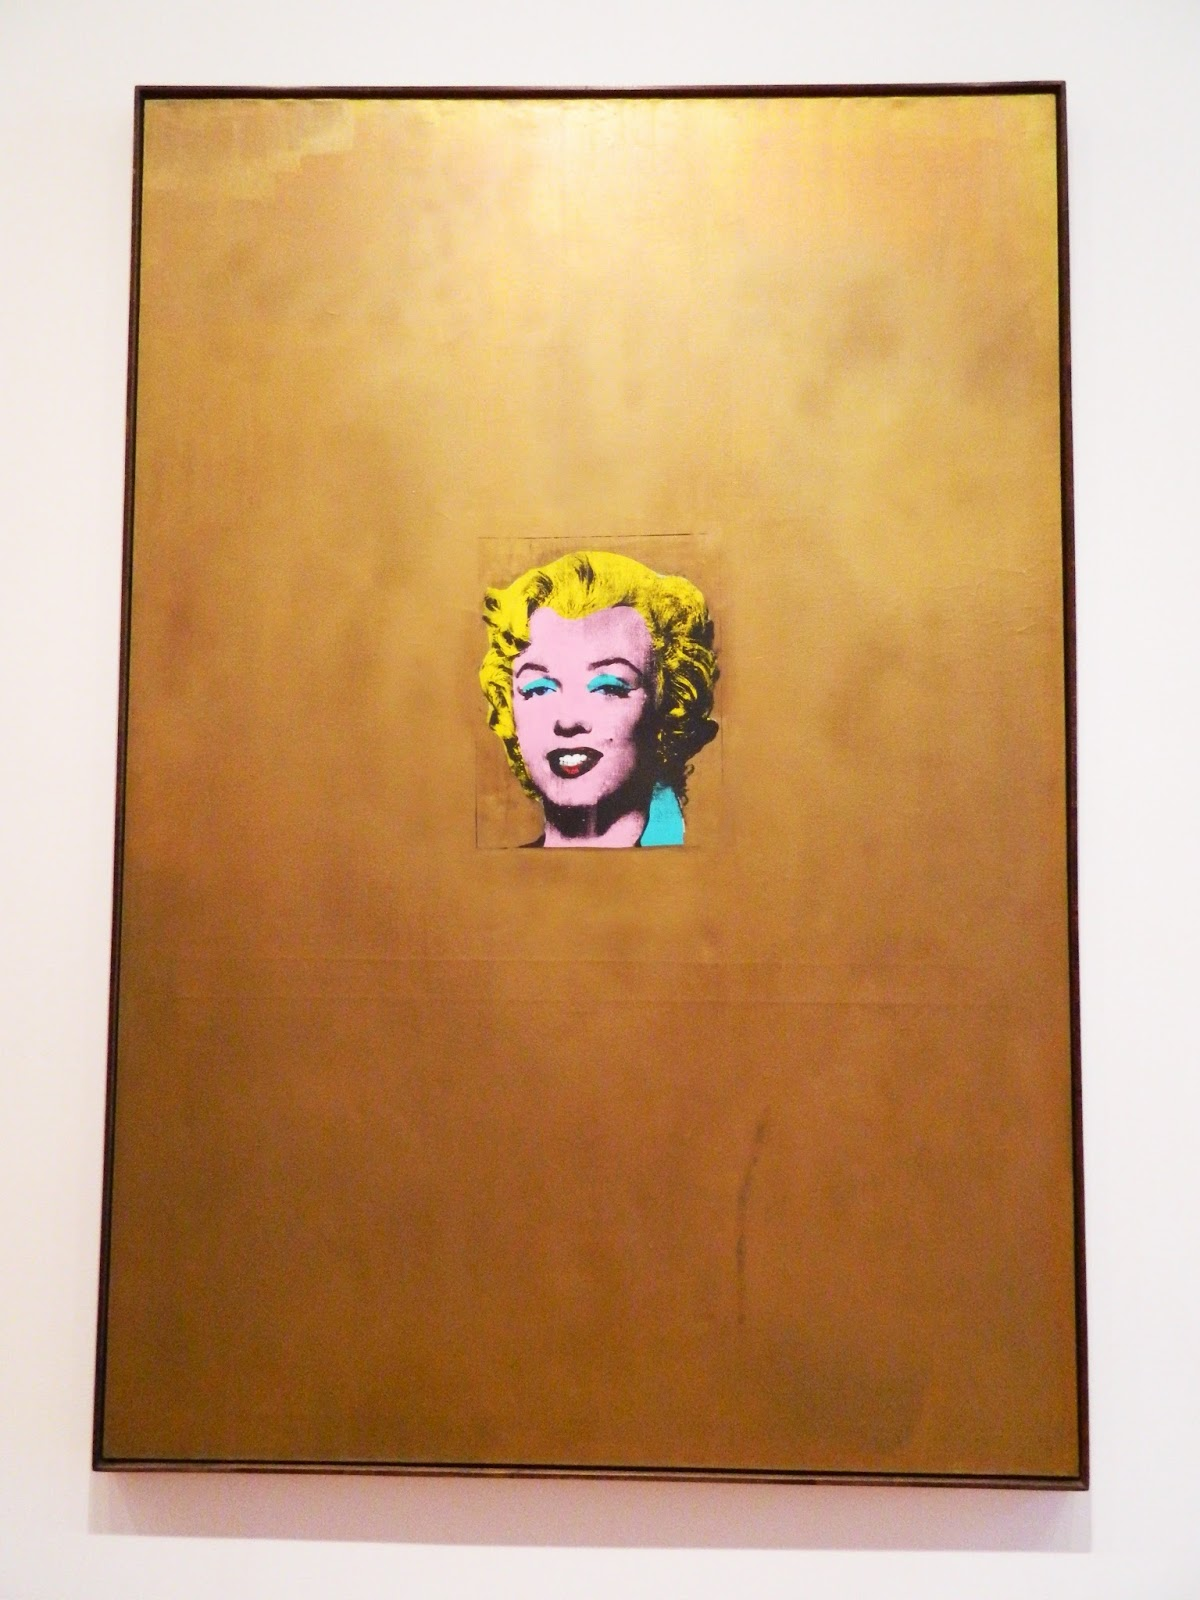 Andy Warhol, Gold Marilyn Monroe silk screen